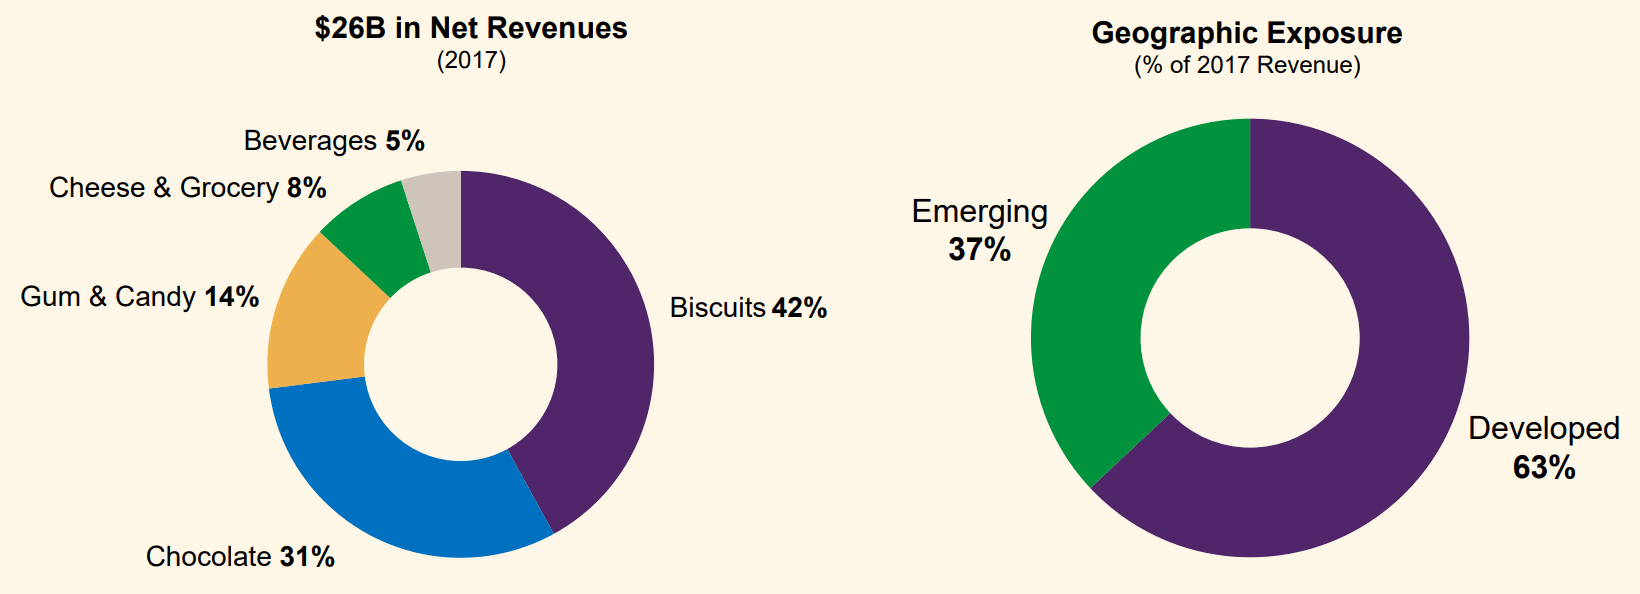 Mondelez-Biscuits-Chocolate-Gum-Candy-Revenue-Mix